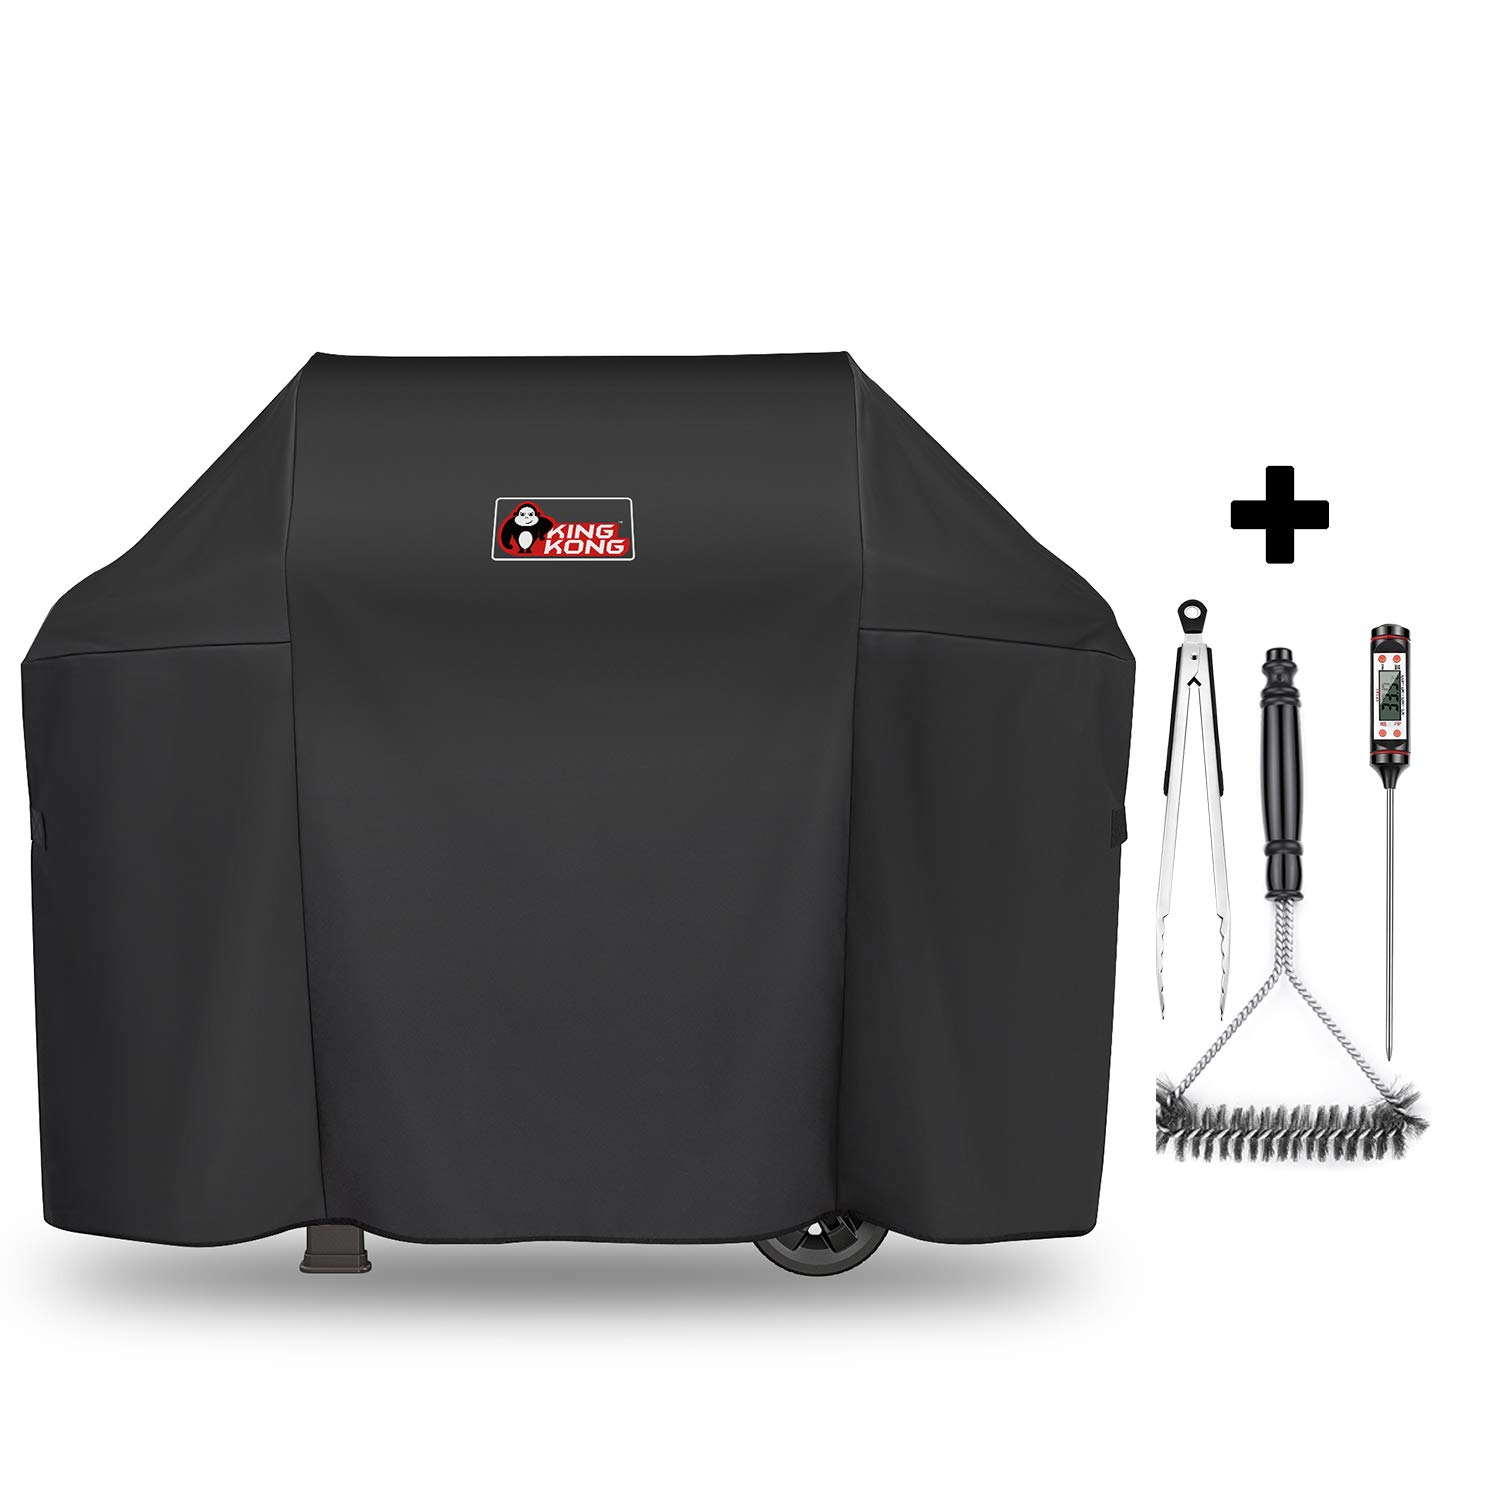 Kingkong 7139 Grill Cover for Weber Spirit II 300 and Spirit 200 Series (with Side Mounted Controls) Gas Grill Including Brush, Tongs and Thermometer by King Kong